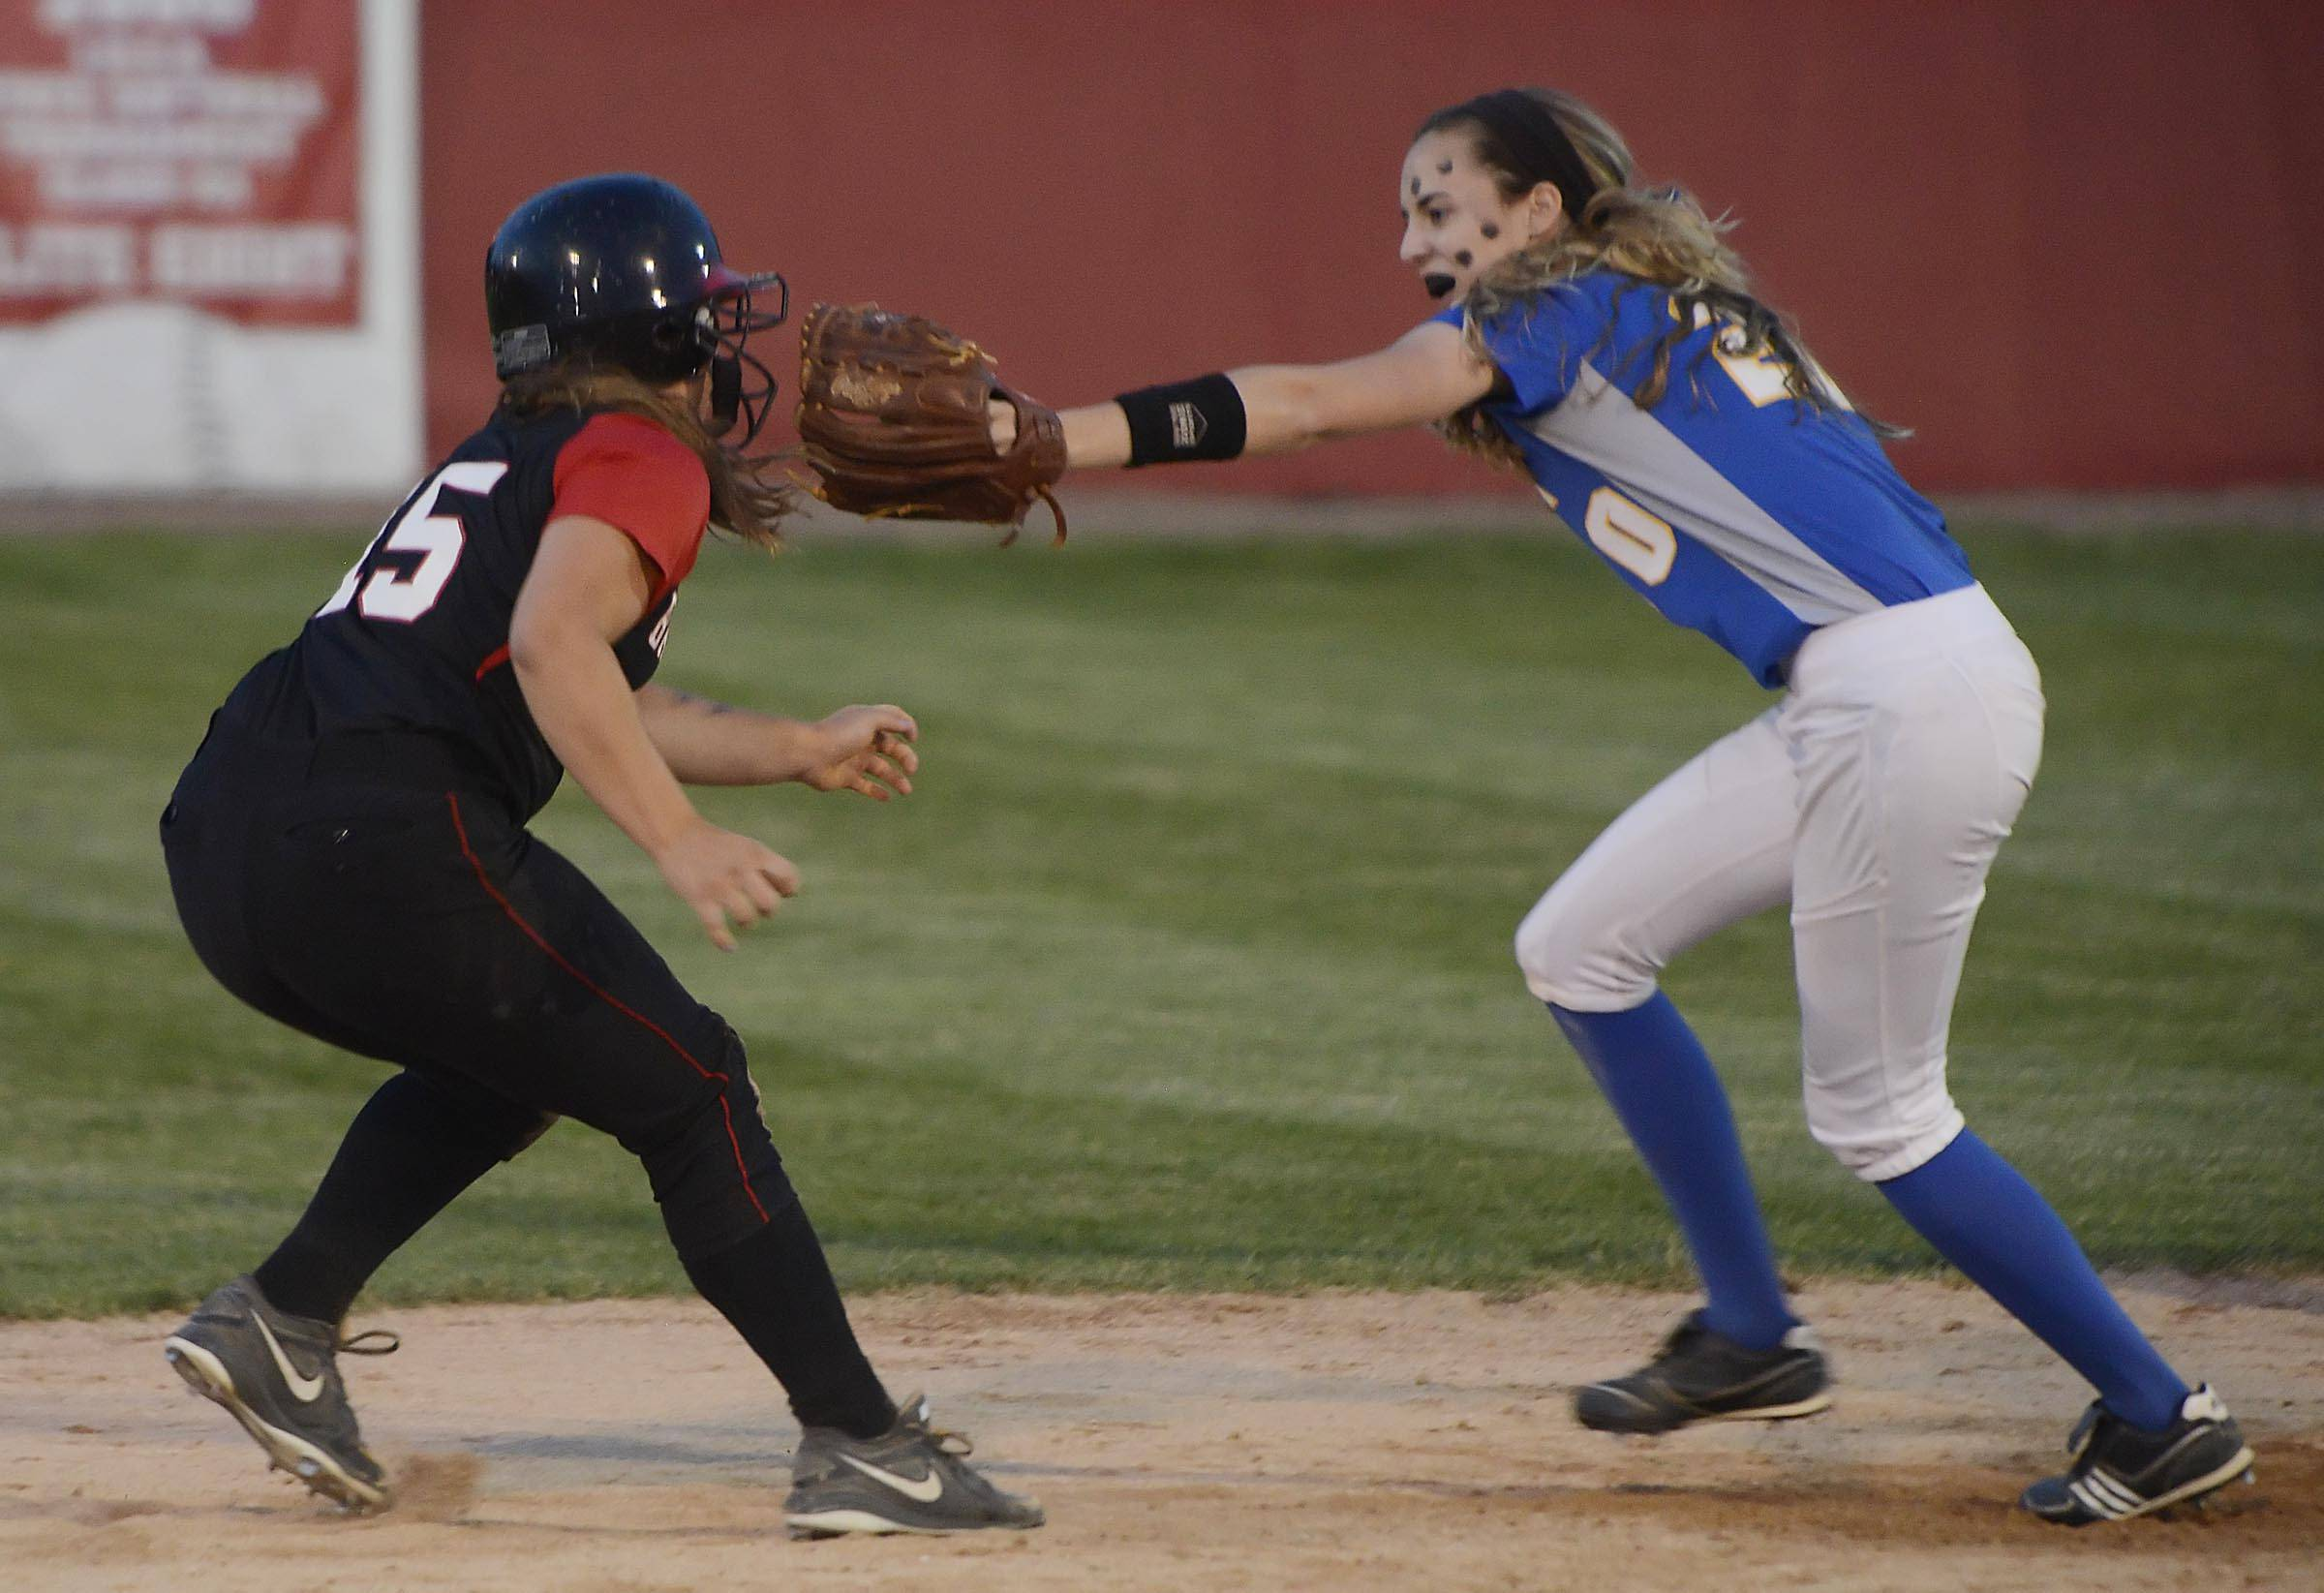 Warren's Shannon McKeon catches Barrington's Rachel Macdonald off second base and tags her out to end the sixth inning in the Class 4A Barrington supersectional Monday.